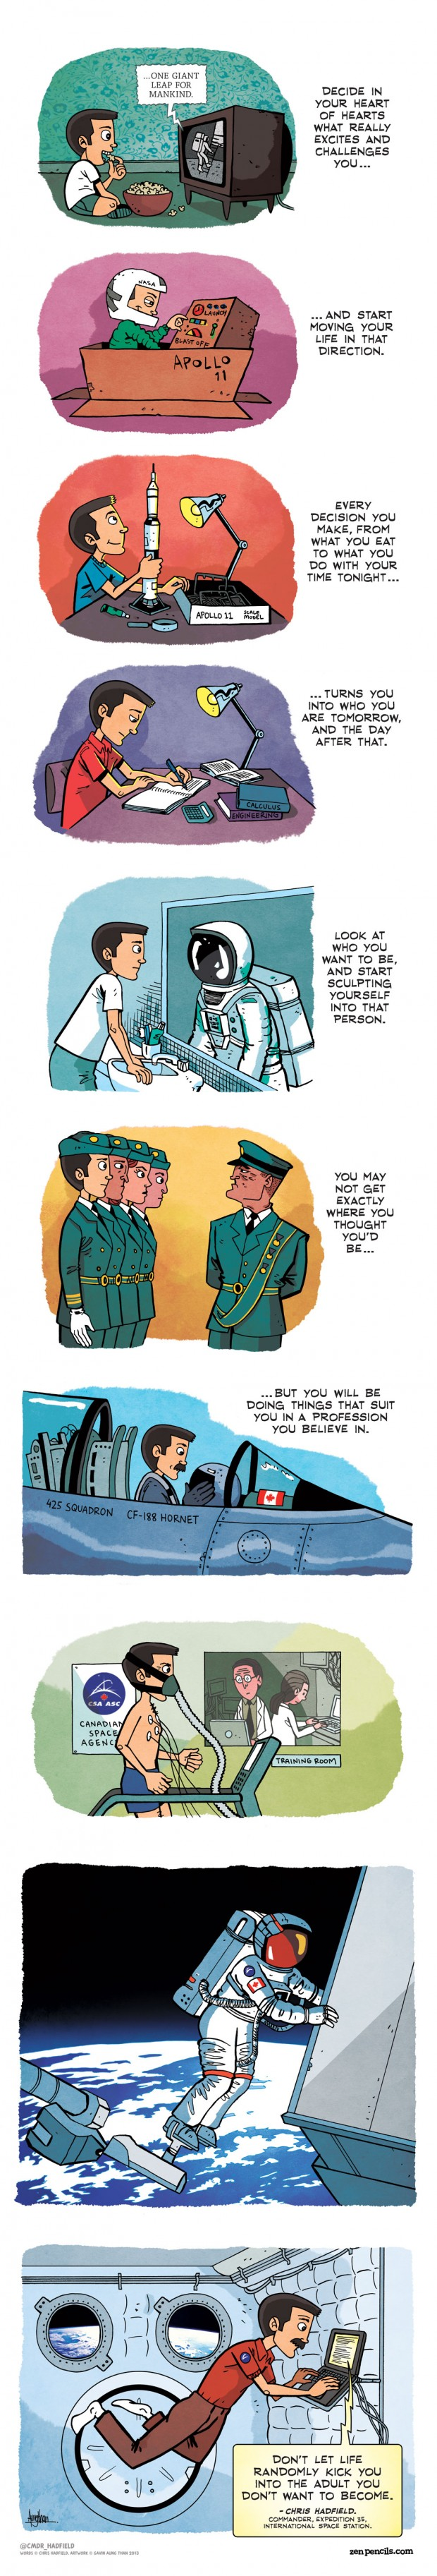 Chris Hadfield Advice - Comic